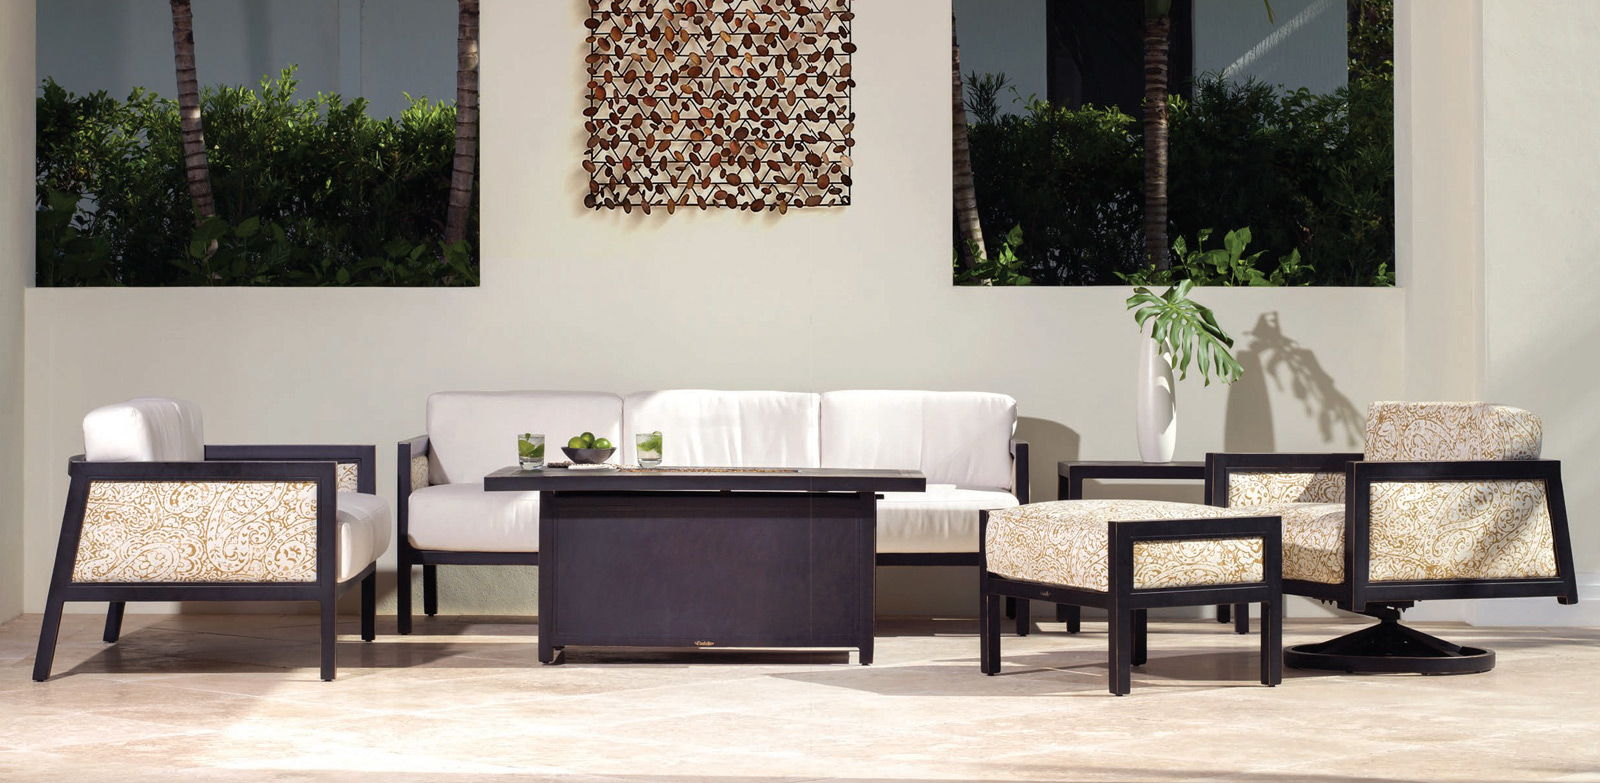 Gold coast city collection in costa rica costa rica for Outdoor furniture gold coast